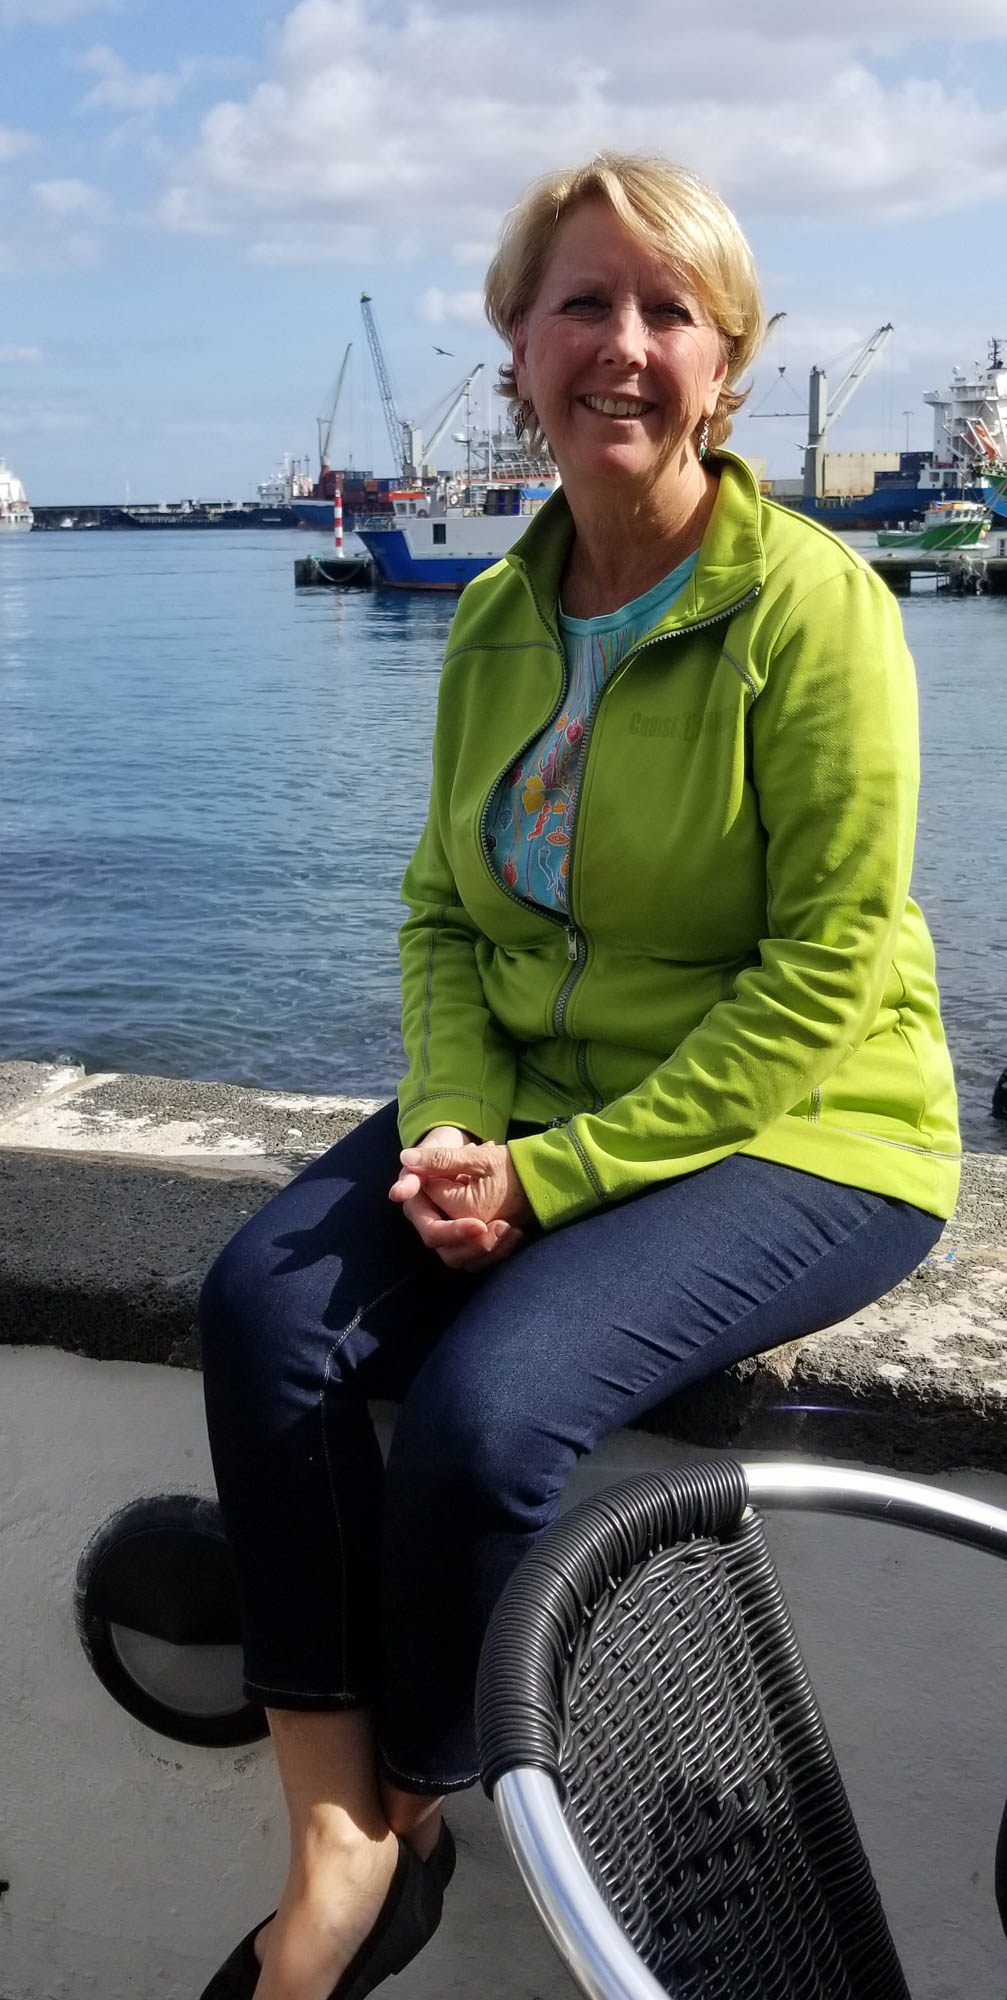 Woman sitting on wall in Sao Miguel, Azores harbor